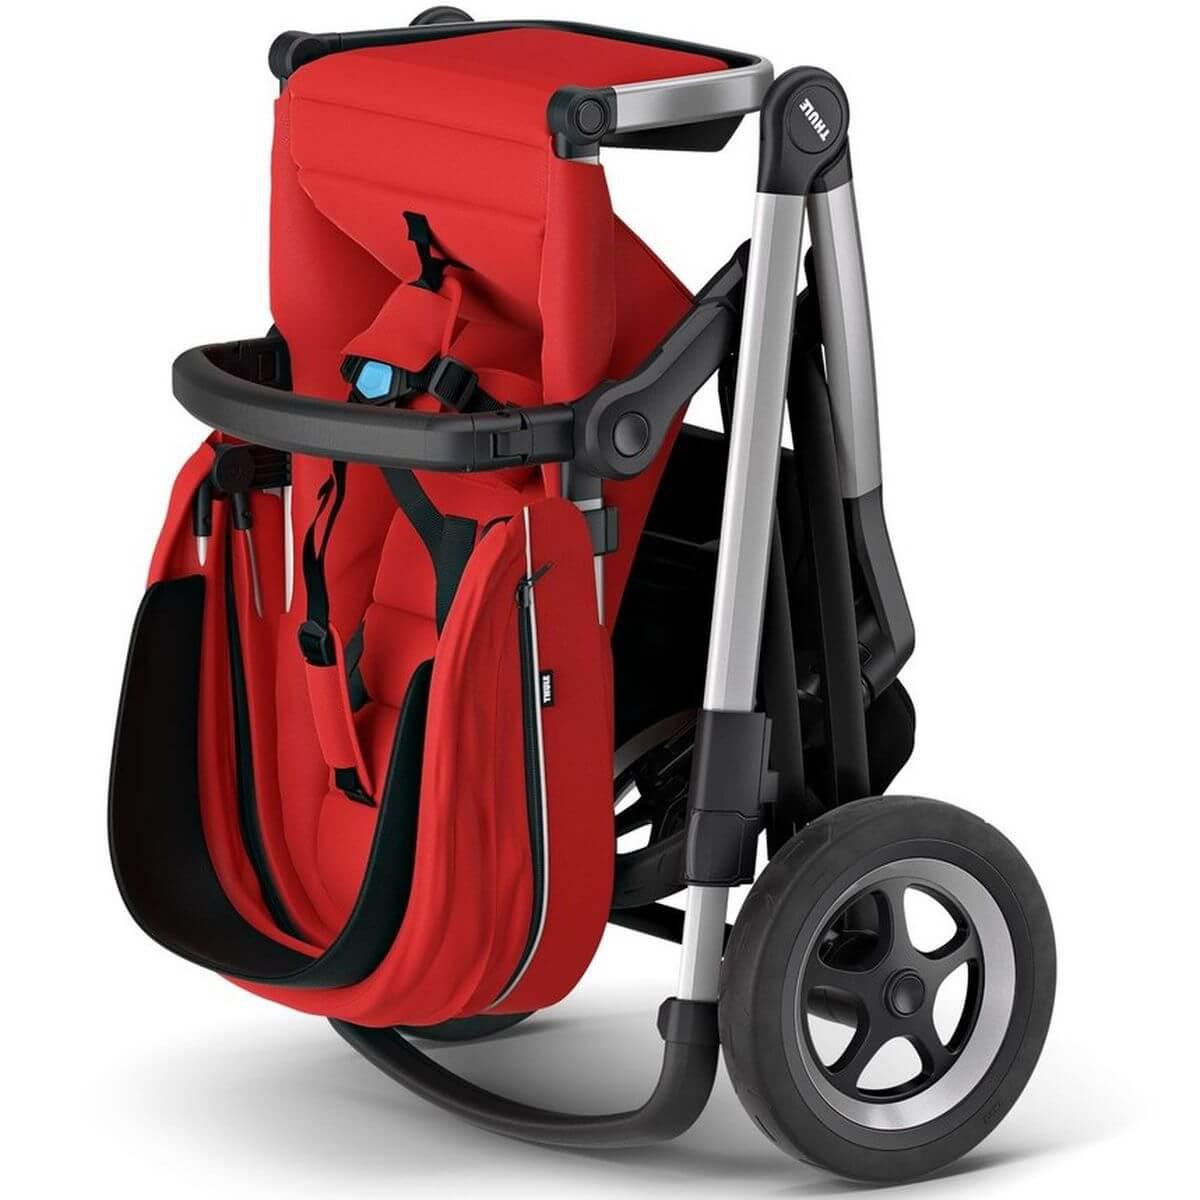 Assise-poussette SLEEK Thule energy red